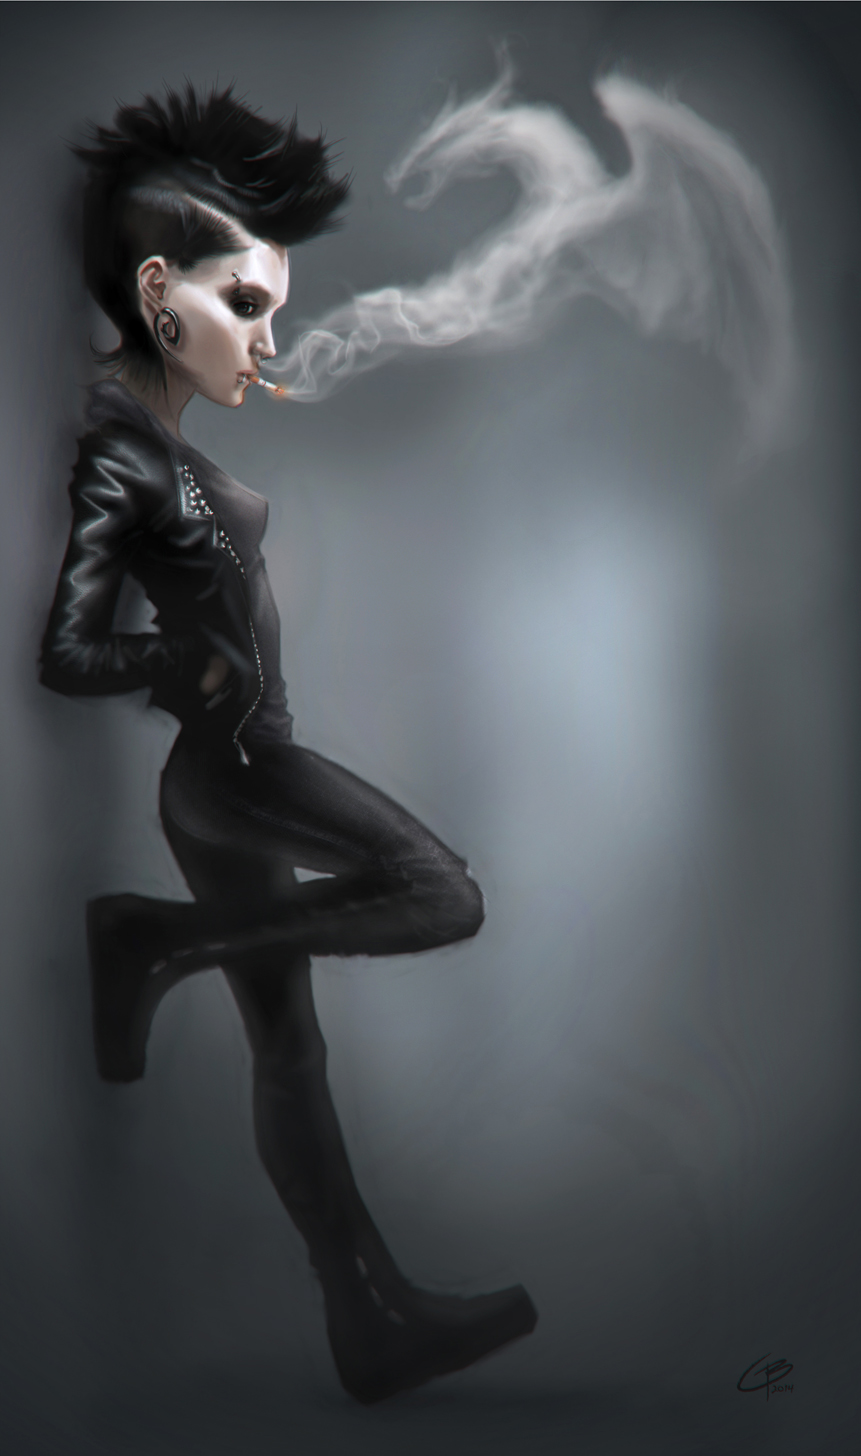 Lisbeth salander the girl with the dragon tattoo by for The girl with the dragon tattoo story